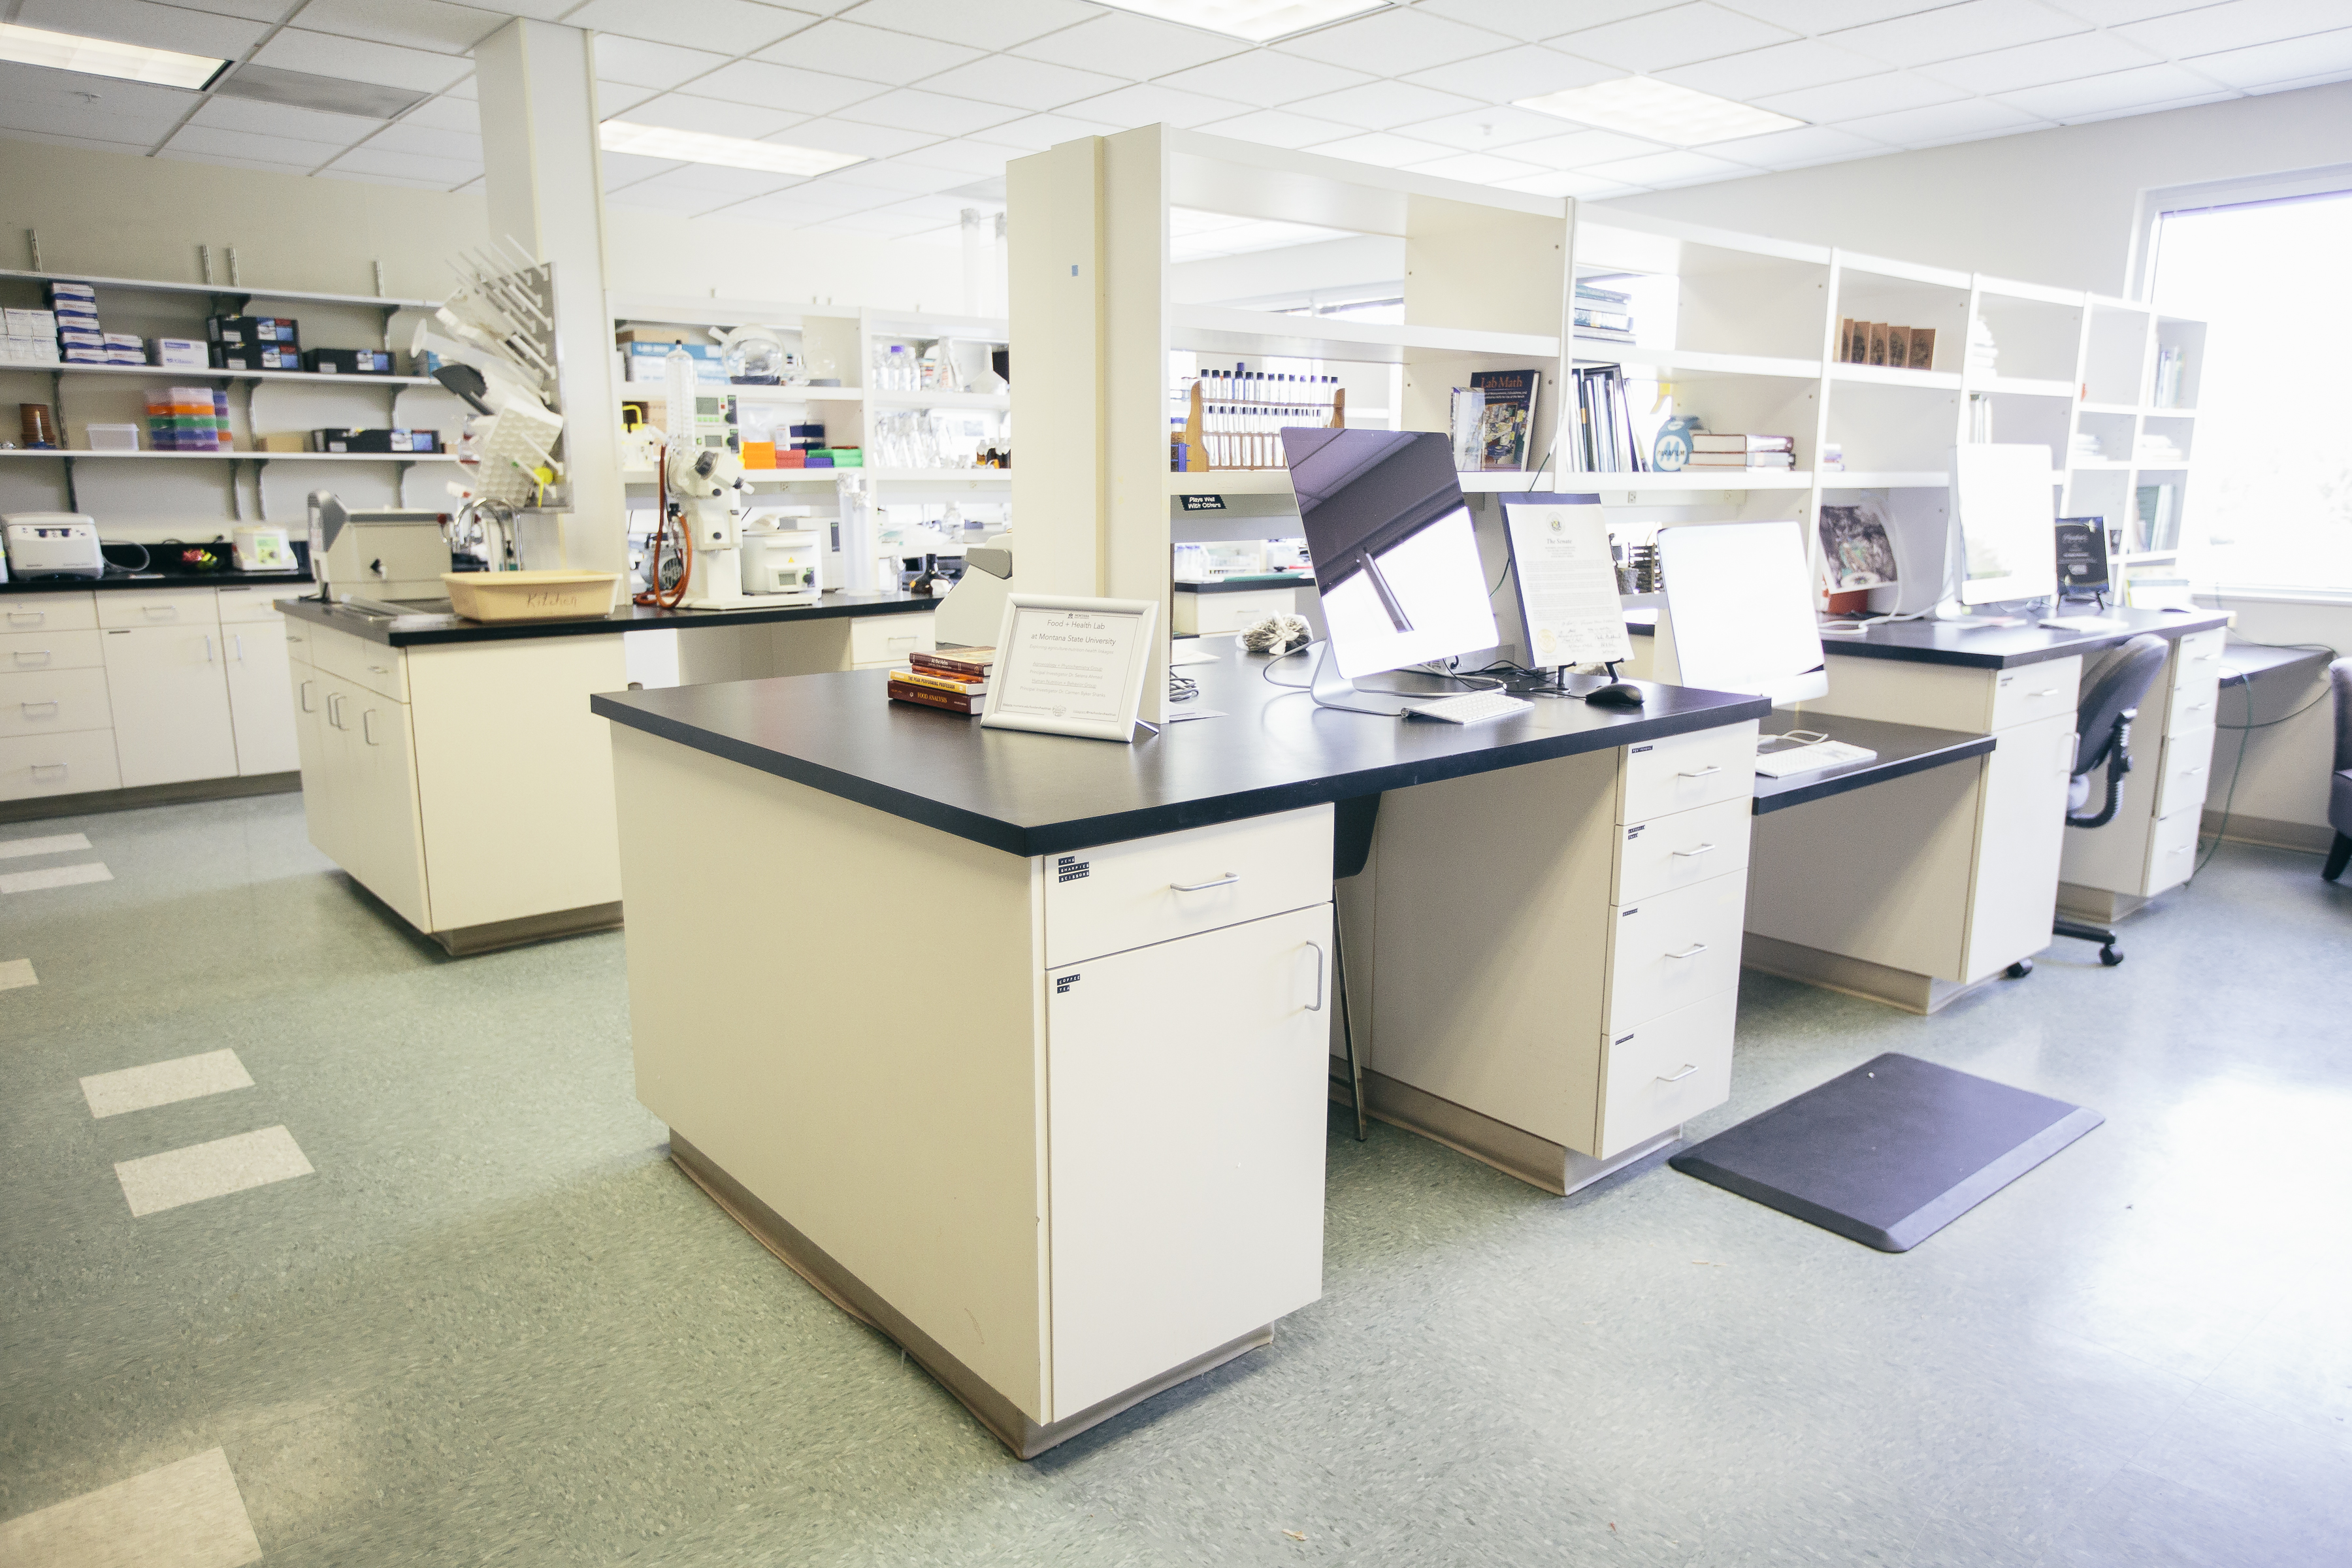 Inside Food and Health Lab